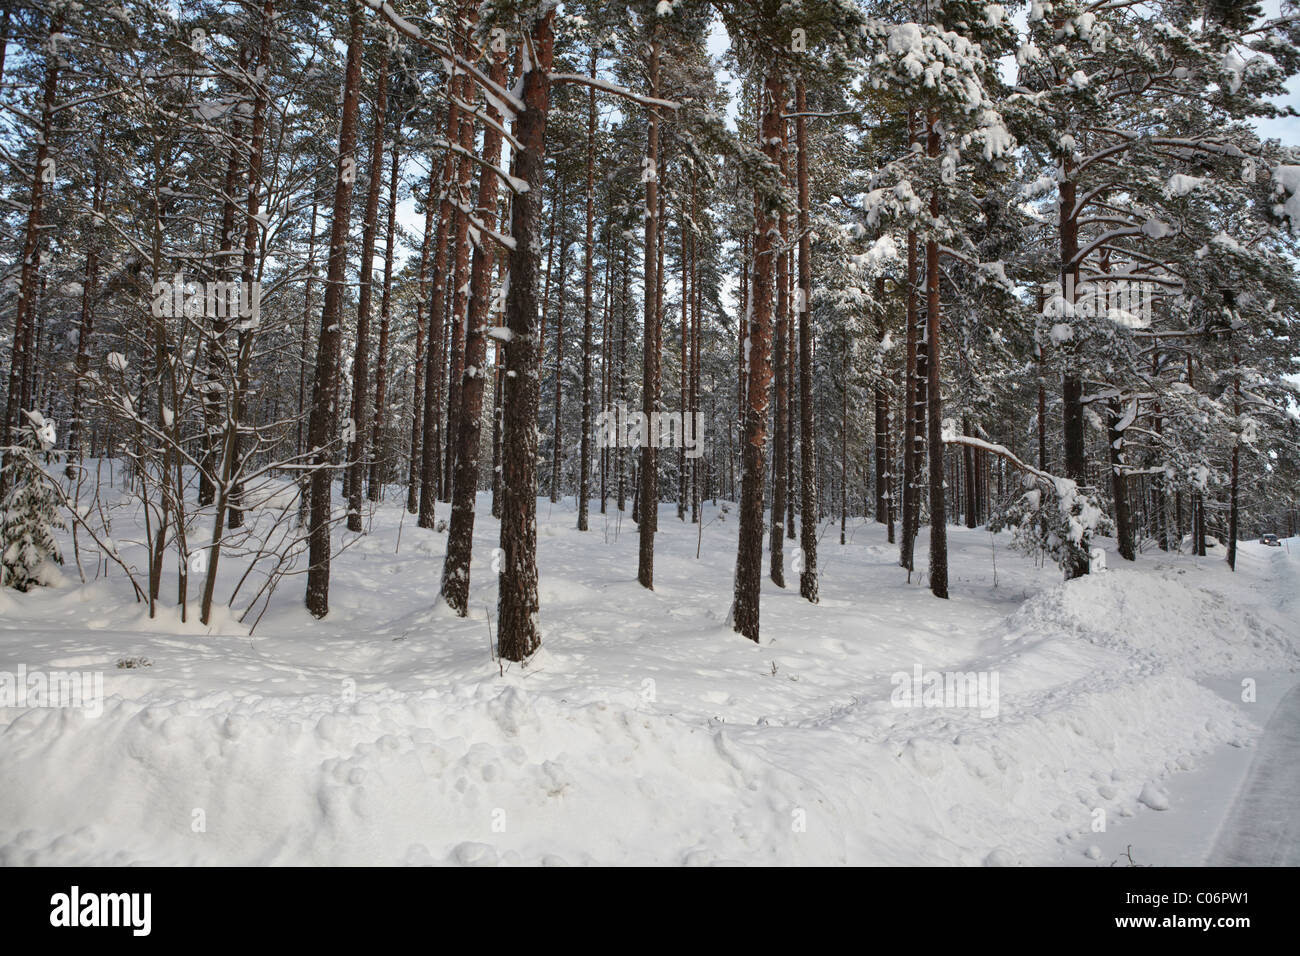 Pine tree forest covered in snow - Stock Image